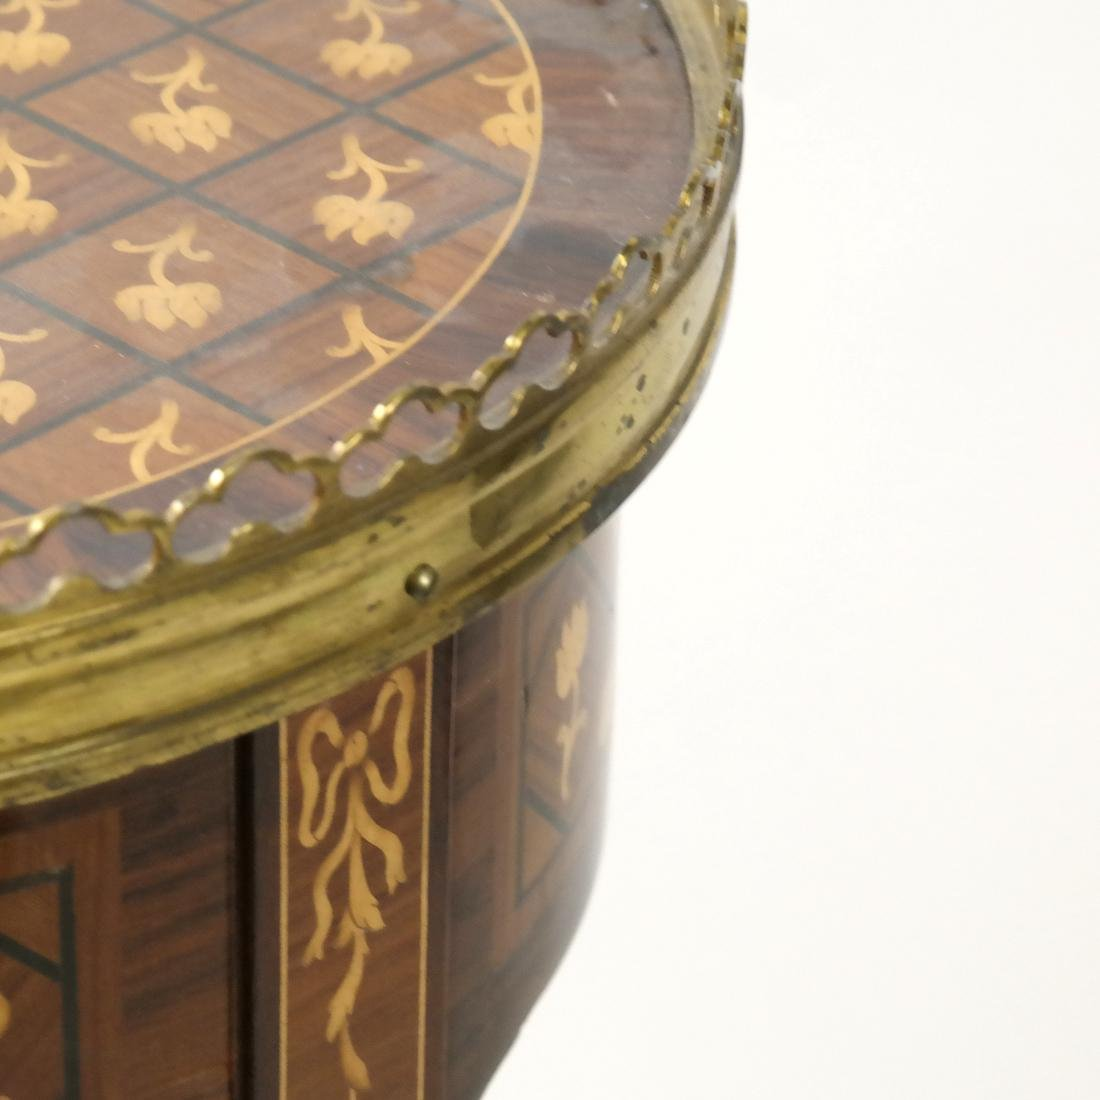 20th Century Parquetry Stand - 7